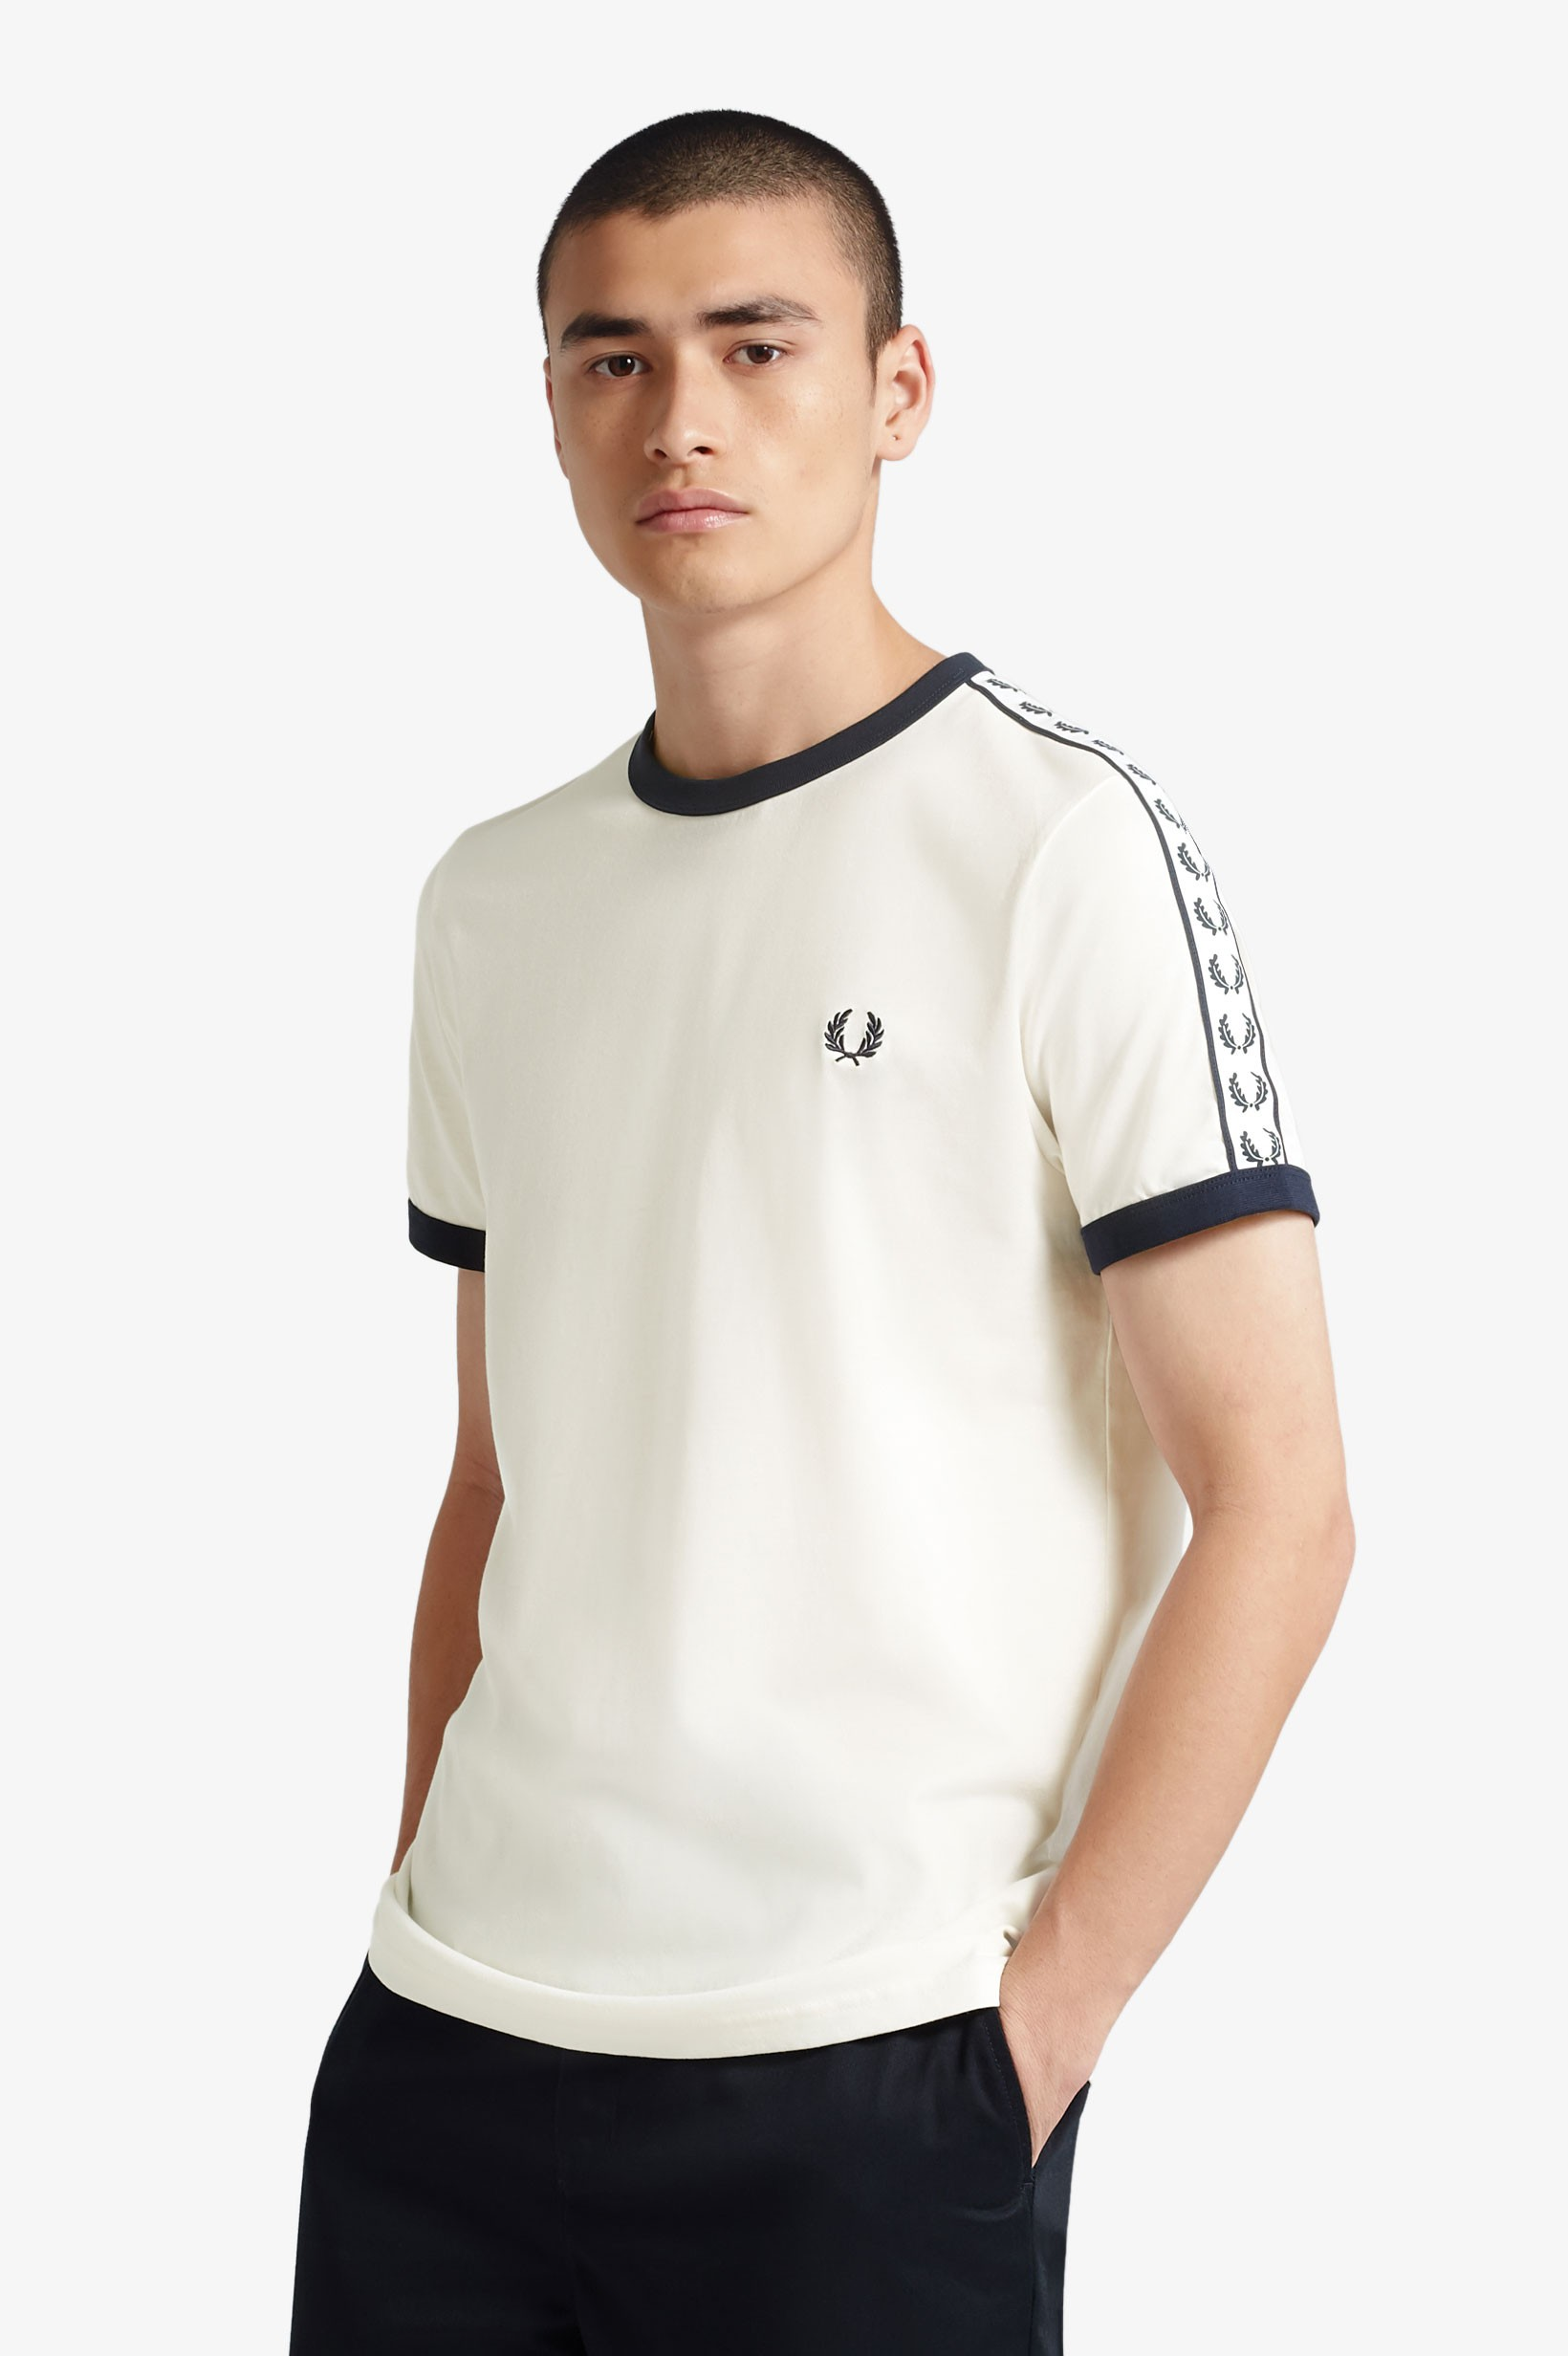 Fred Perry Miesten T-paita, Taped Ring Valkoinen